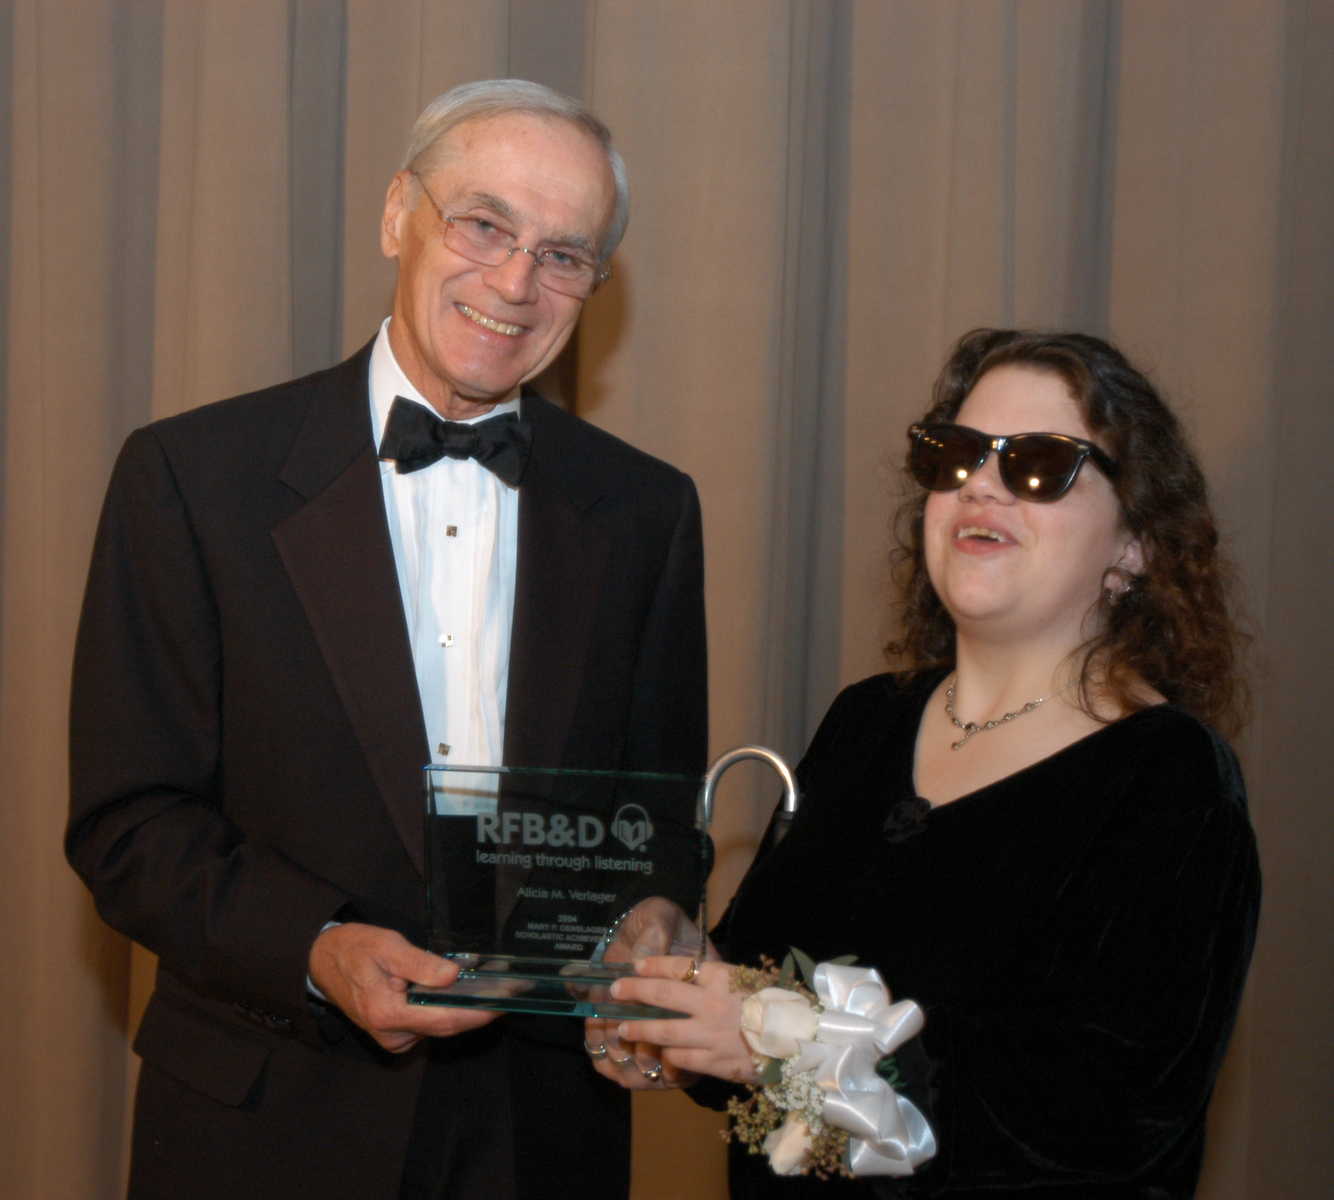 RFB&D President & CEO Richard O. Scribner presents a National Achievement Award to Alicia Verlager.